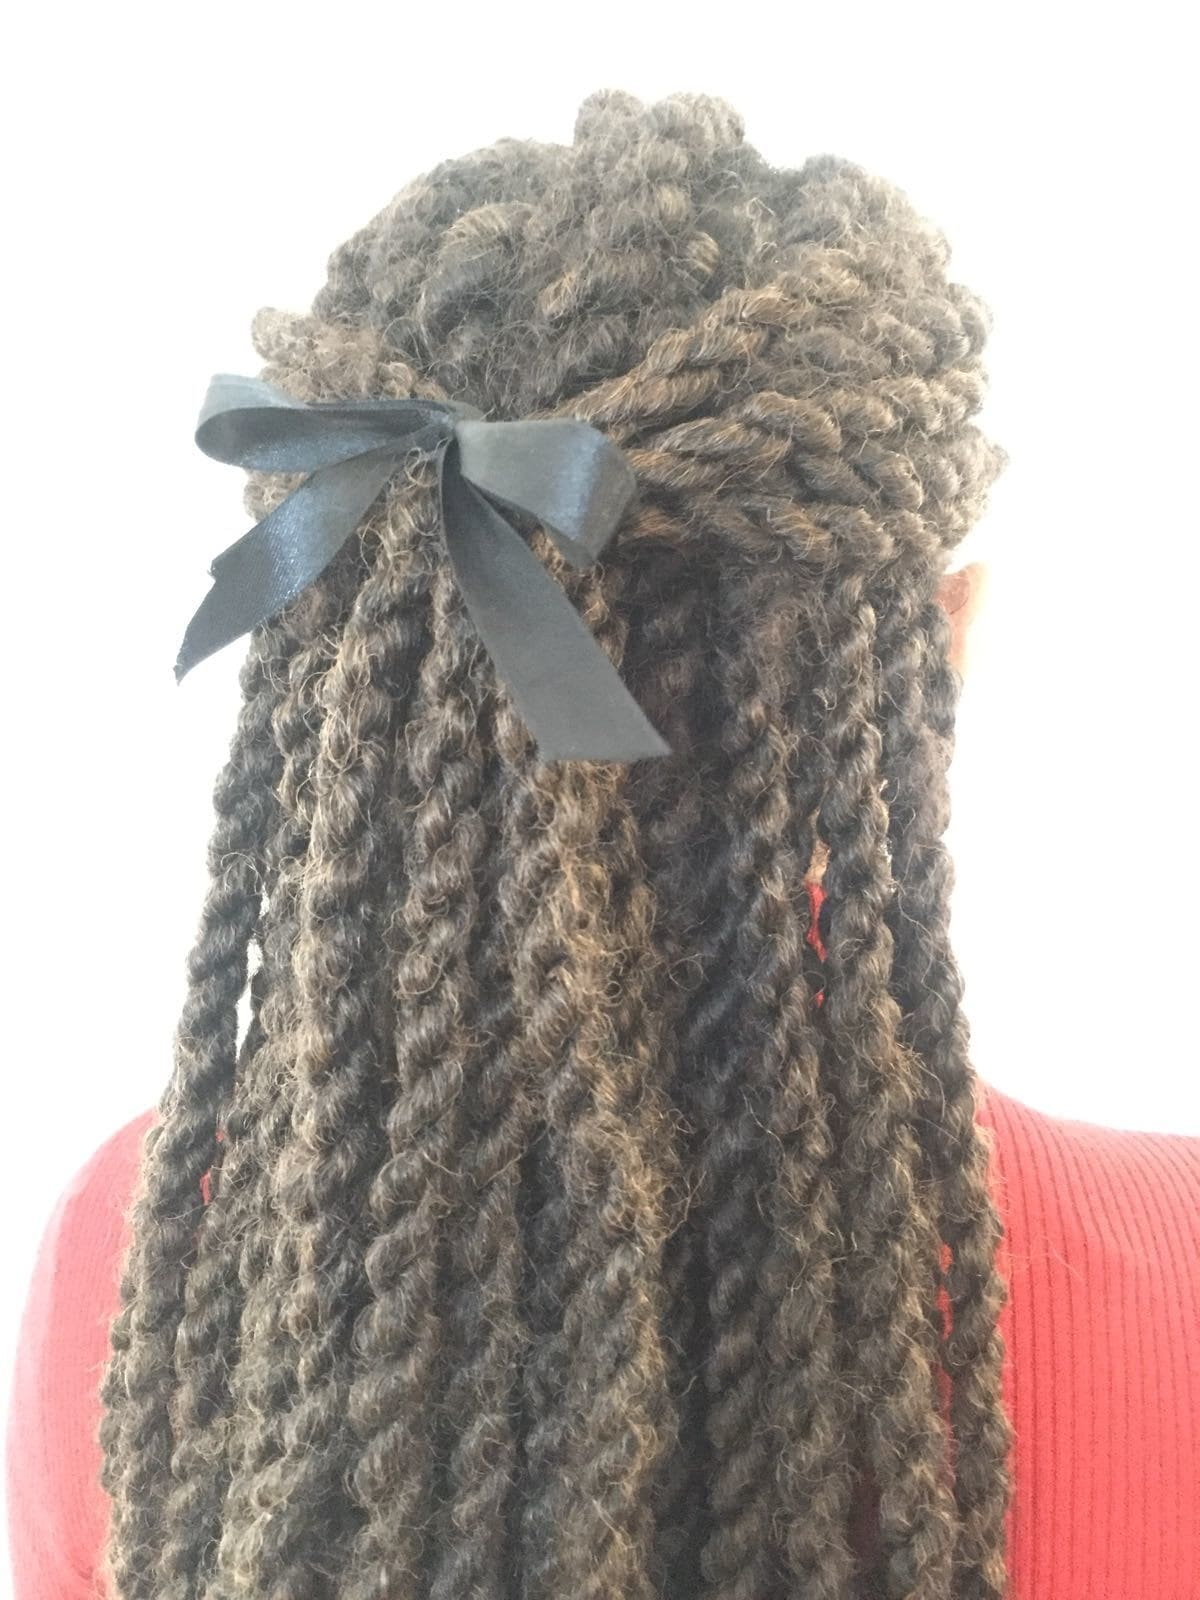 backshot of woman with half up half down marley twist hairstyle that has a bow in it, wearing red jumper